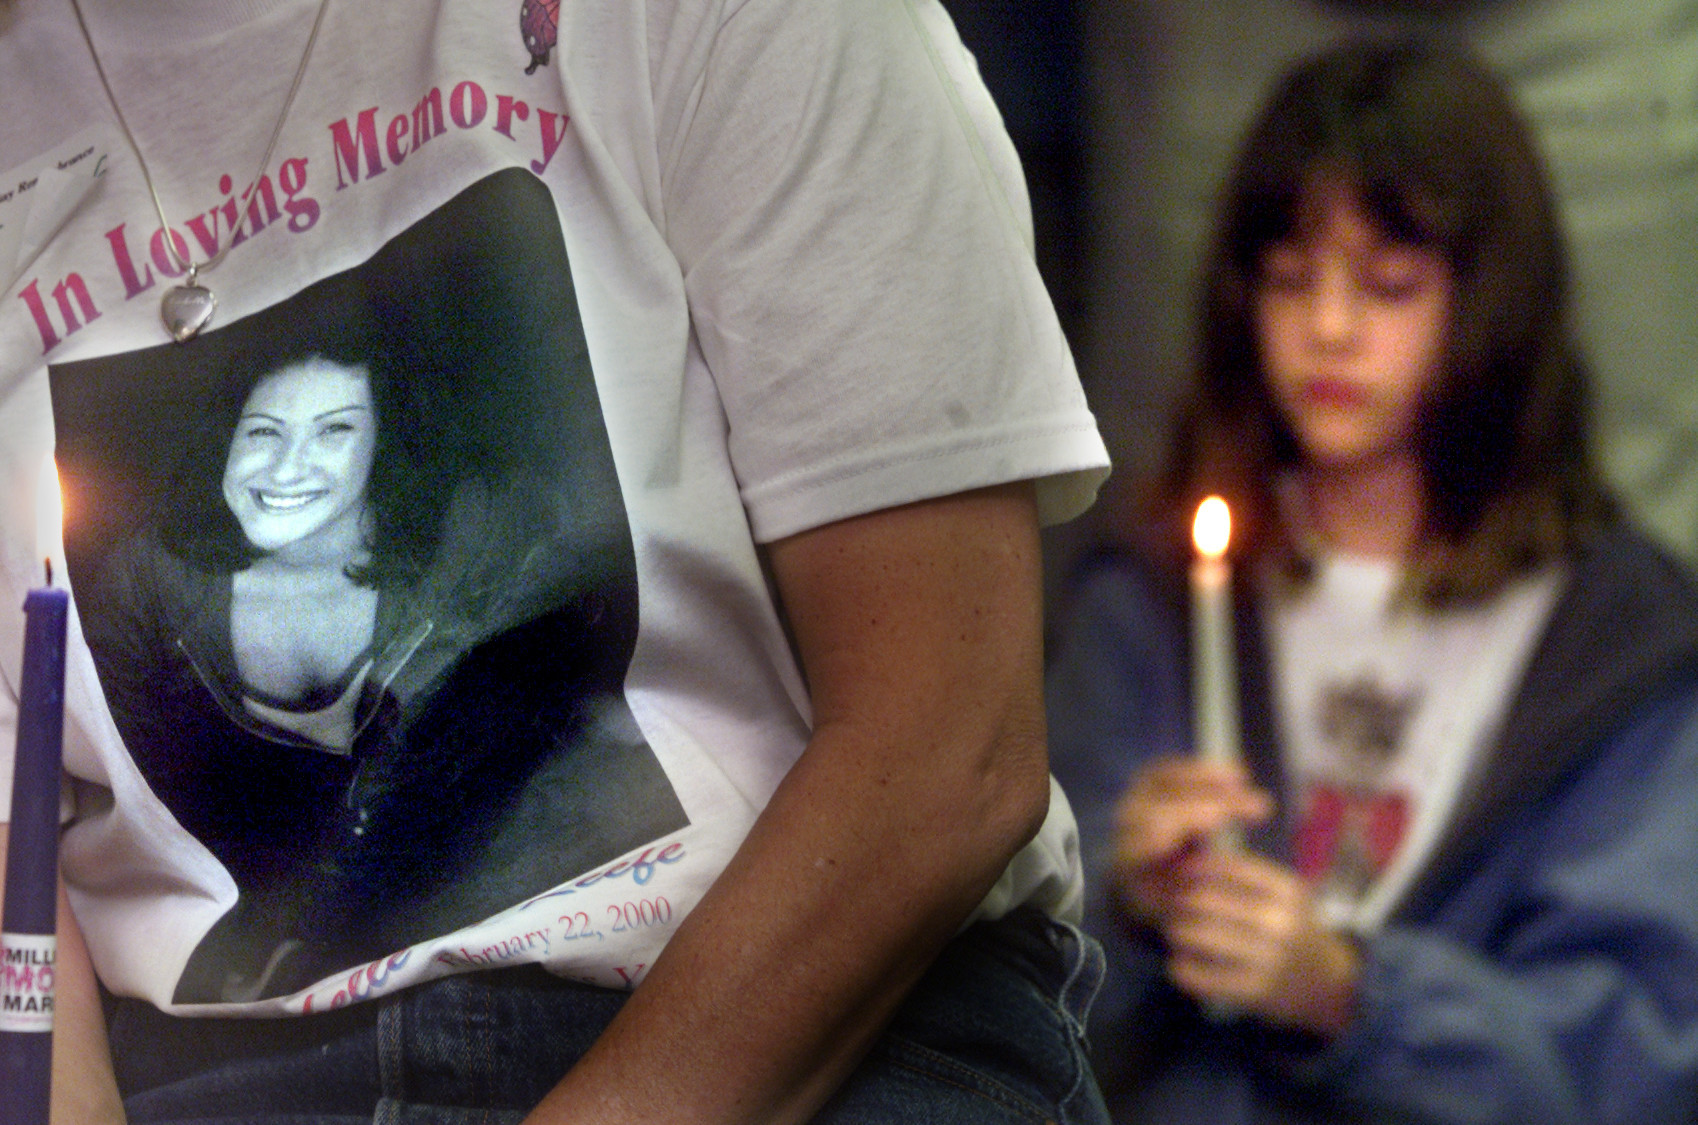 The February 2000 killing of Michelle O'Keefe shook the Antelope Valley community where she lived.